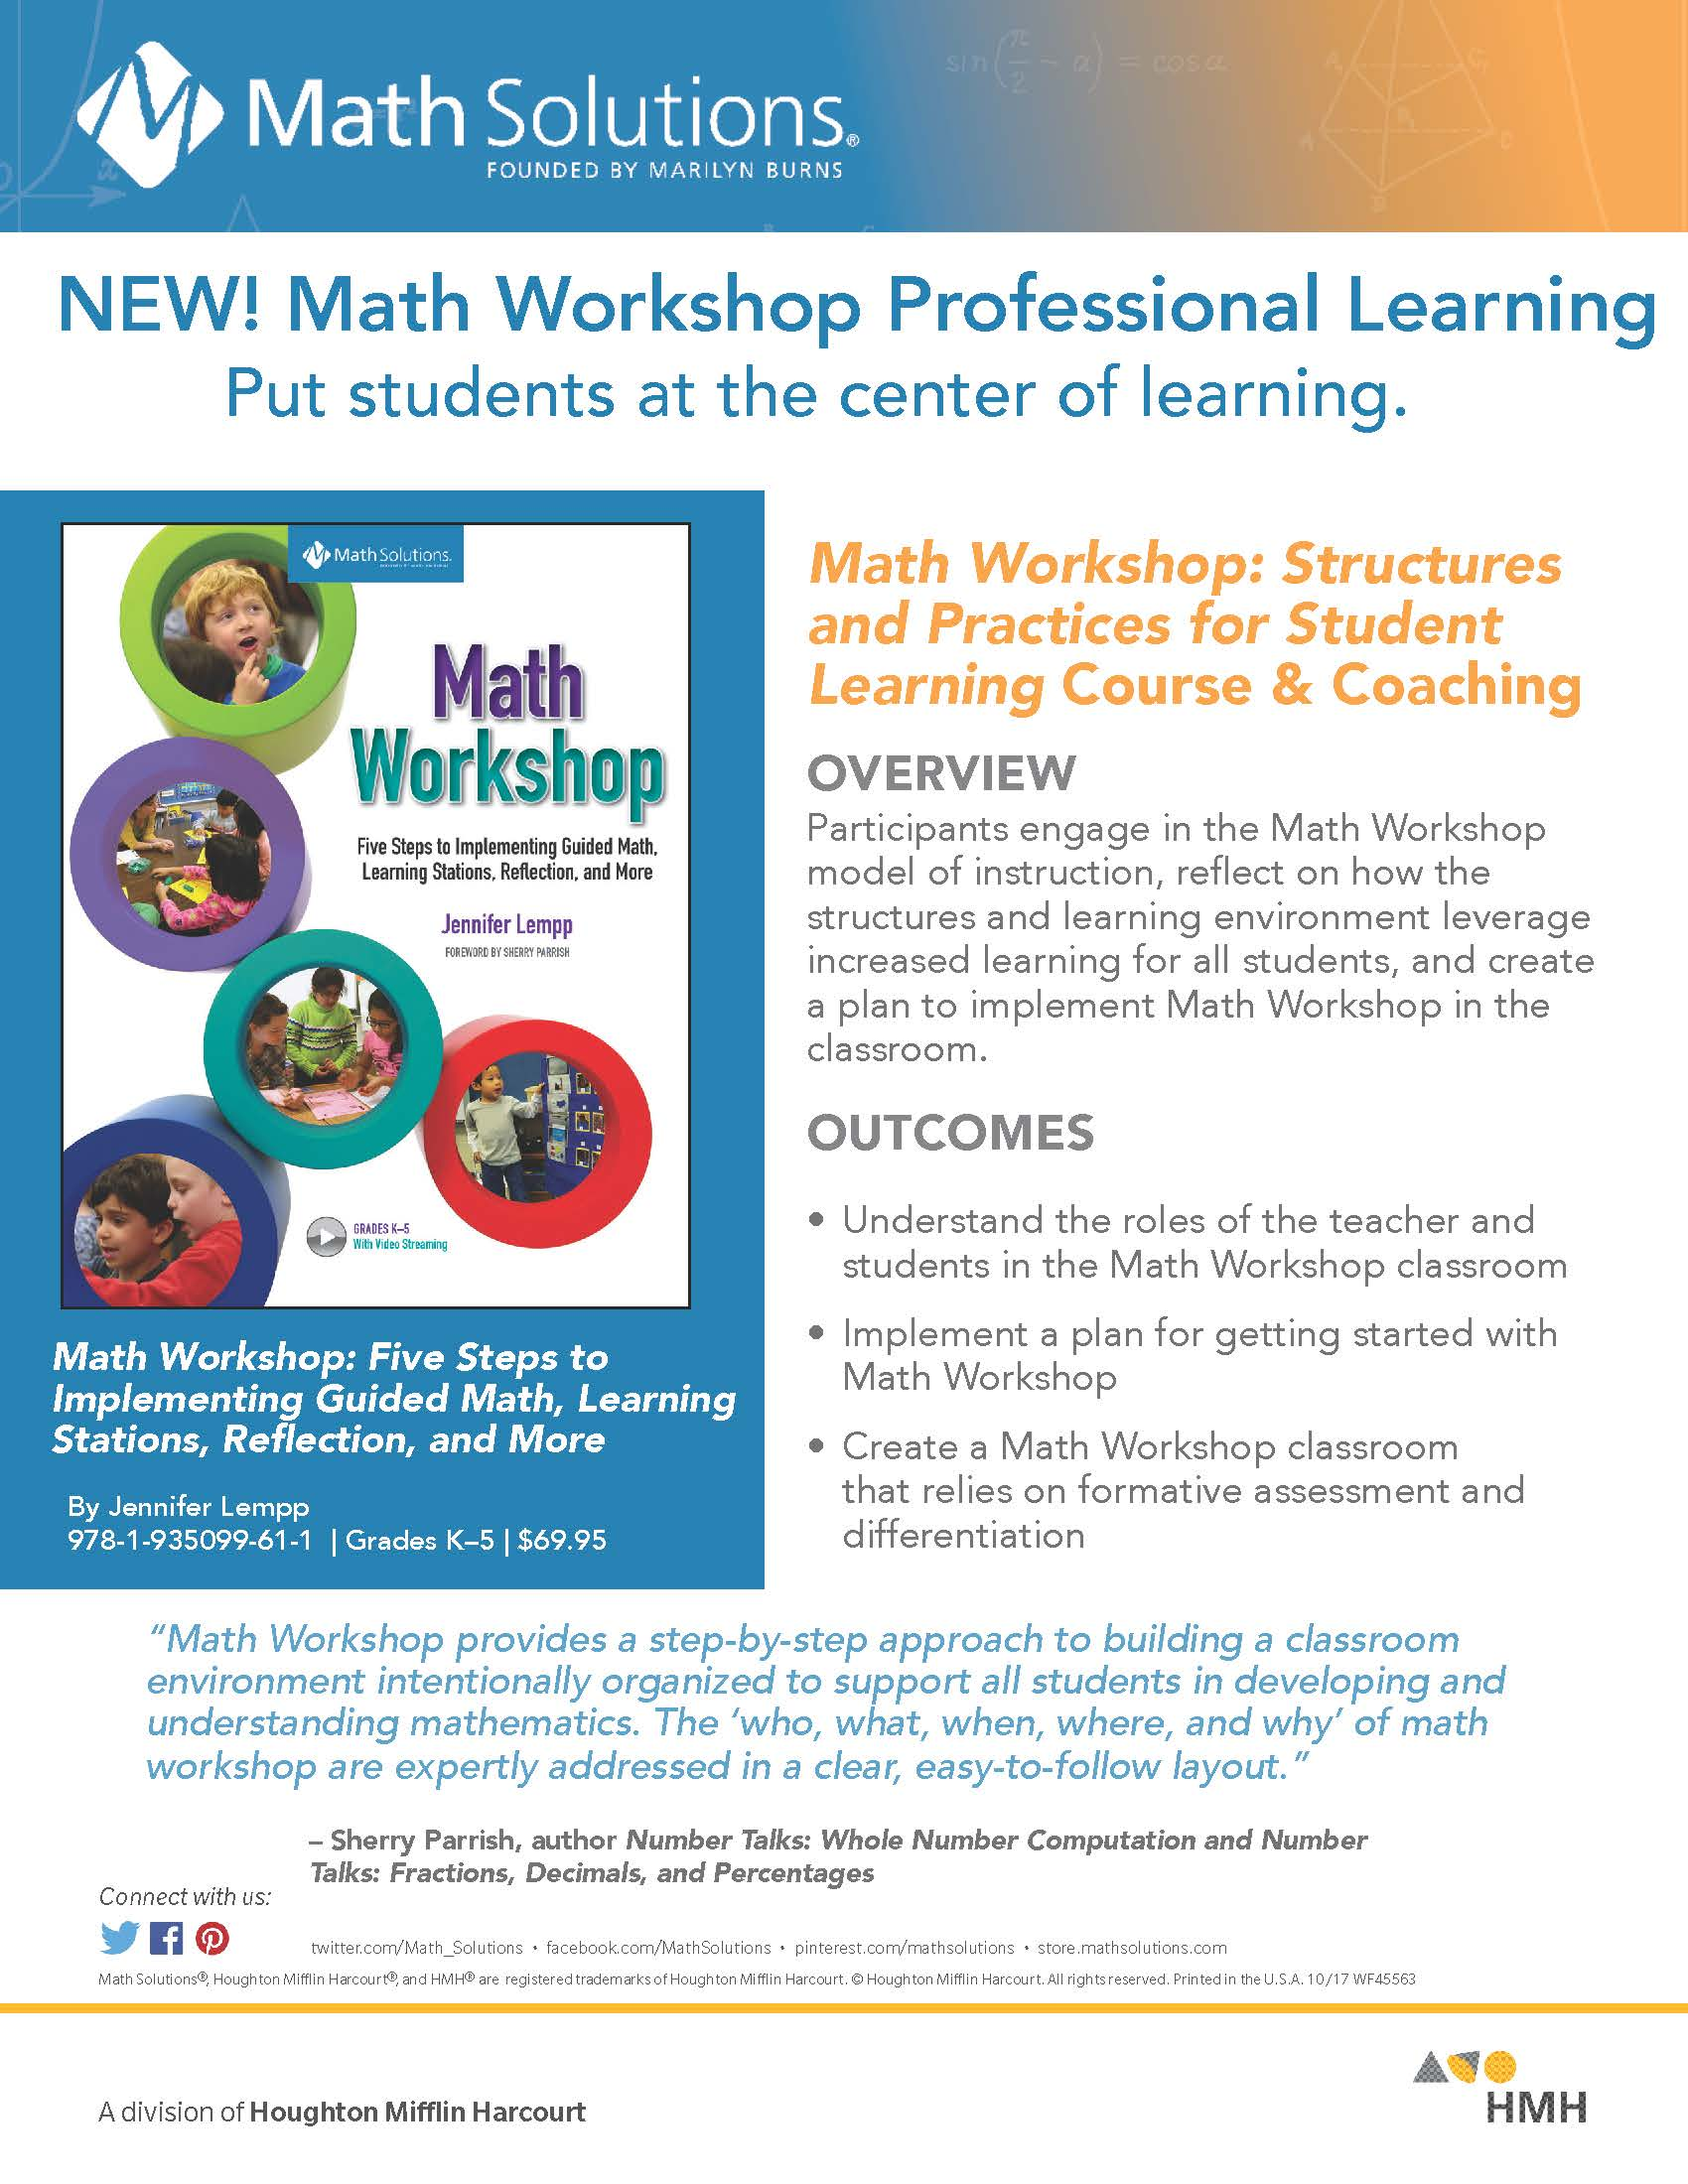 Learn more about our Math Workshop Professional Learning Solutions